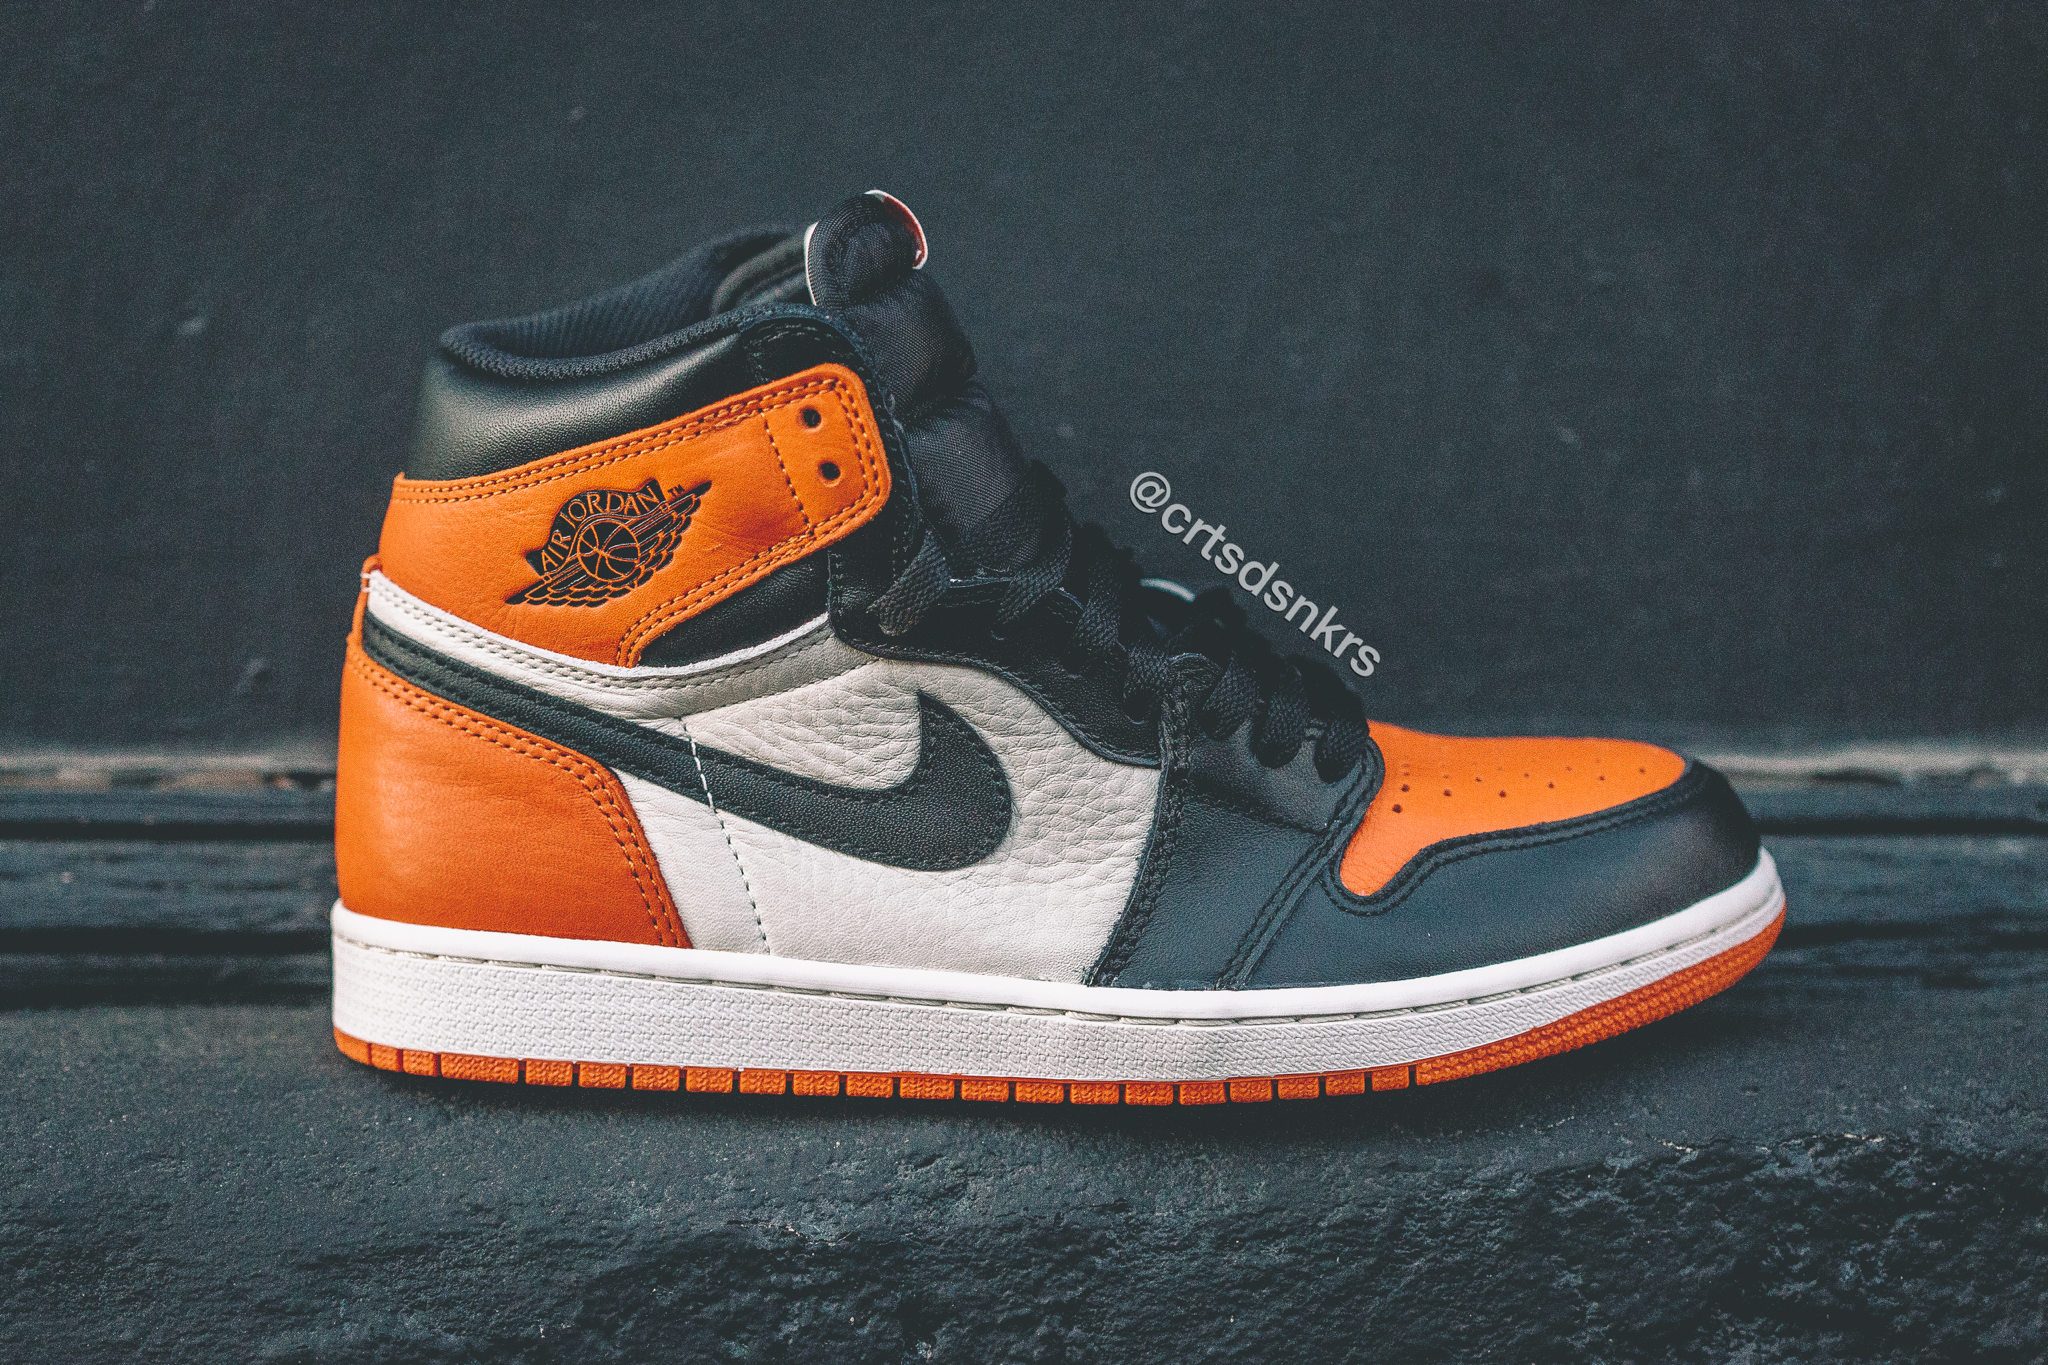 dfc53adfbe76 AJ1 Shattered Backboard – A Closer Look via Courtside Sneakers – The ...